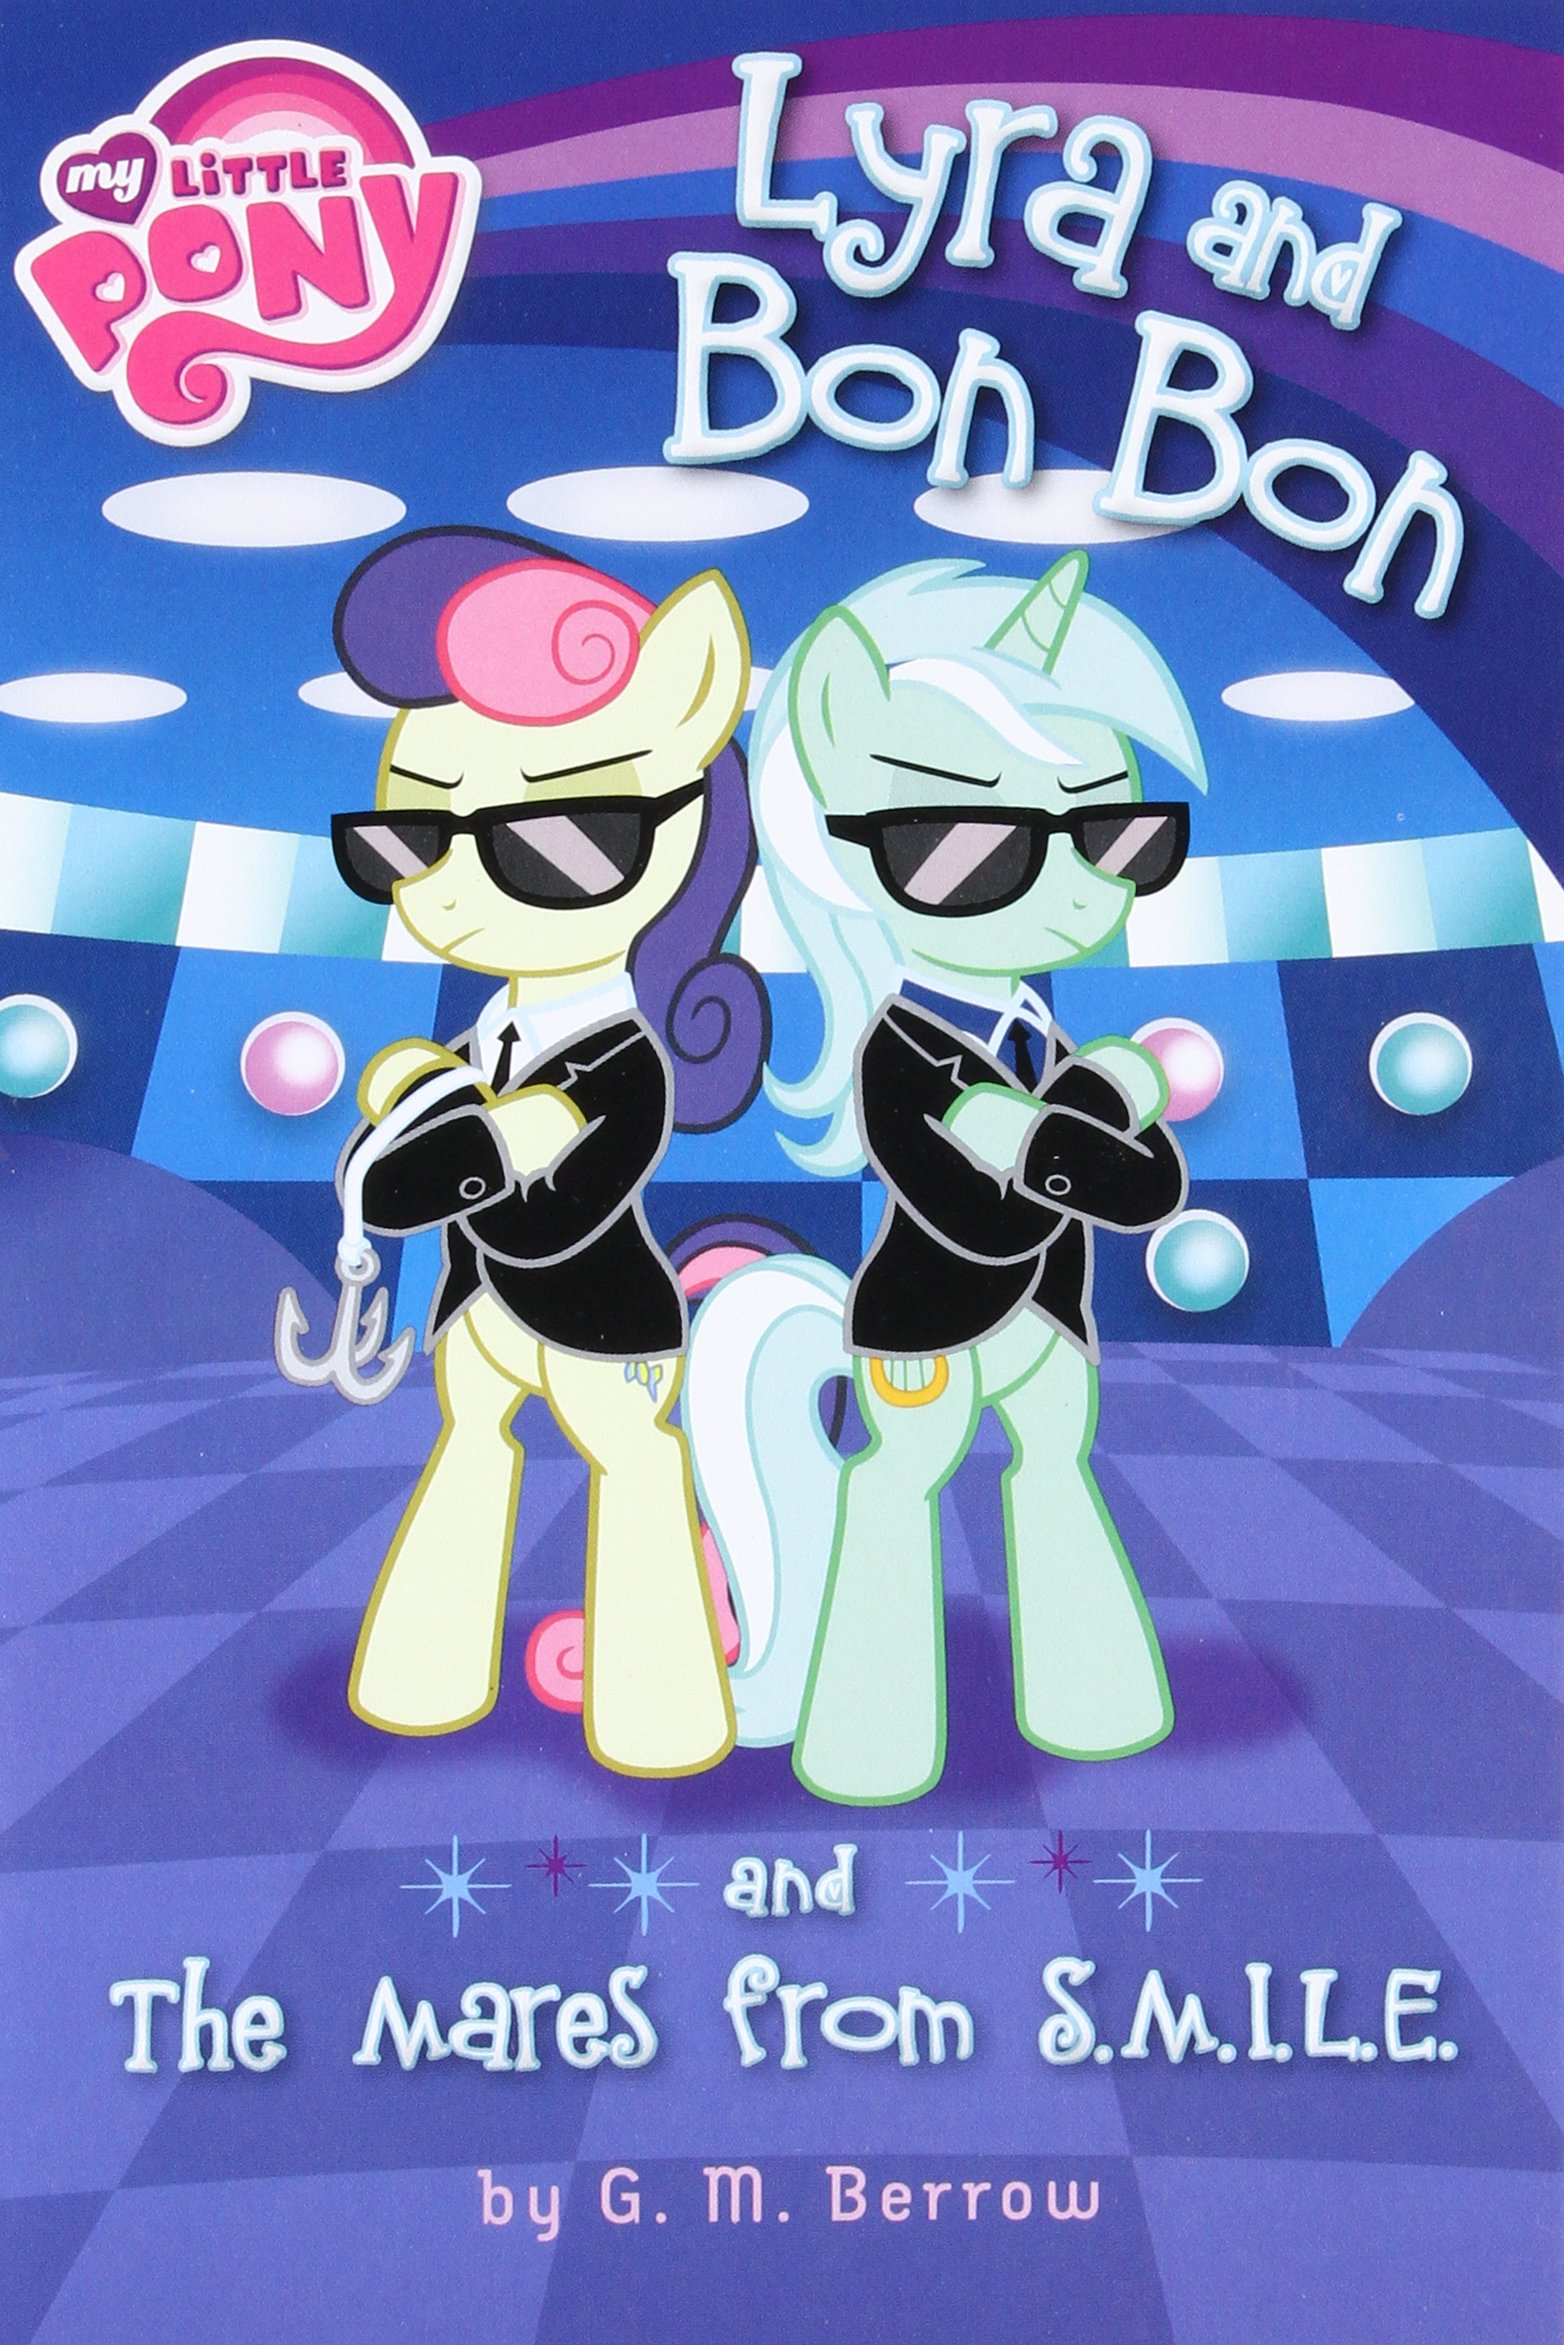 Read Online My Little Pony: Lyra and Bon Bon and the Mares from S.M.I.L.E. (My Little Pony (Little, Brown & Company)) ebook